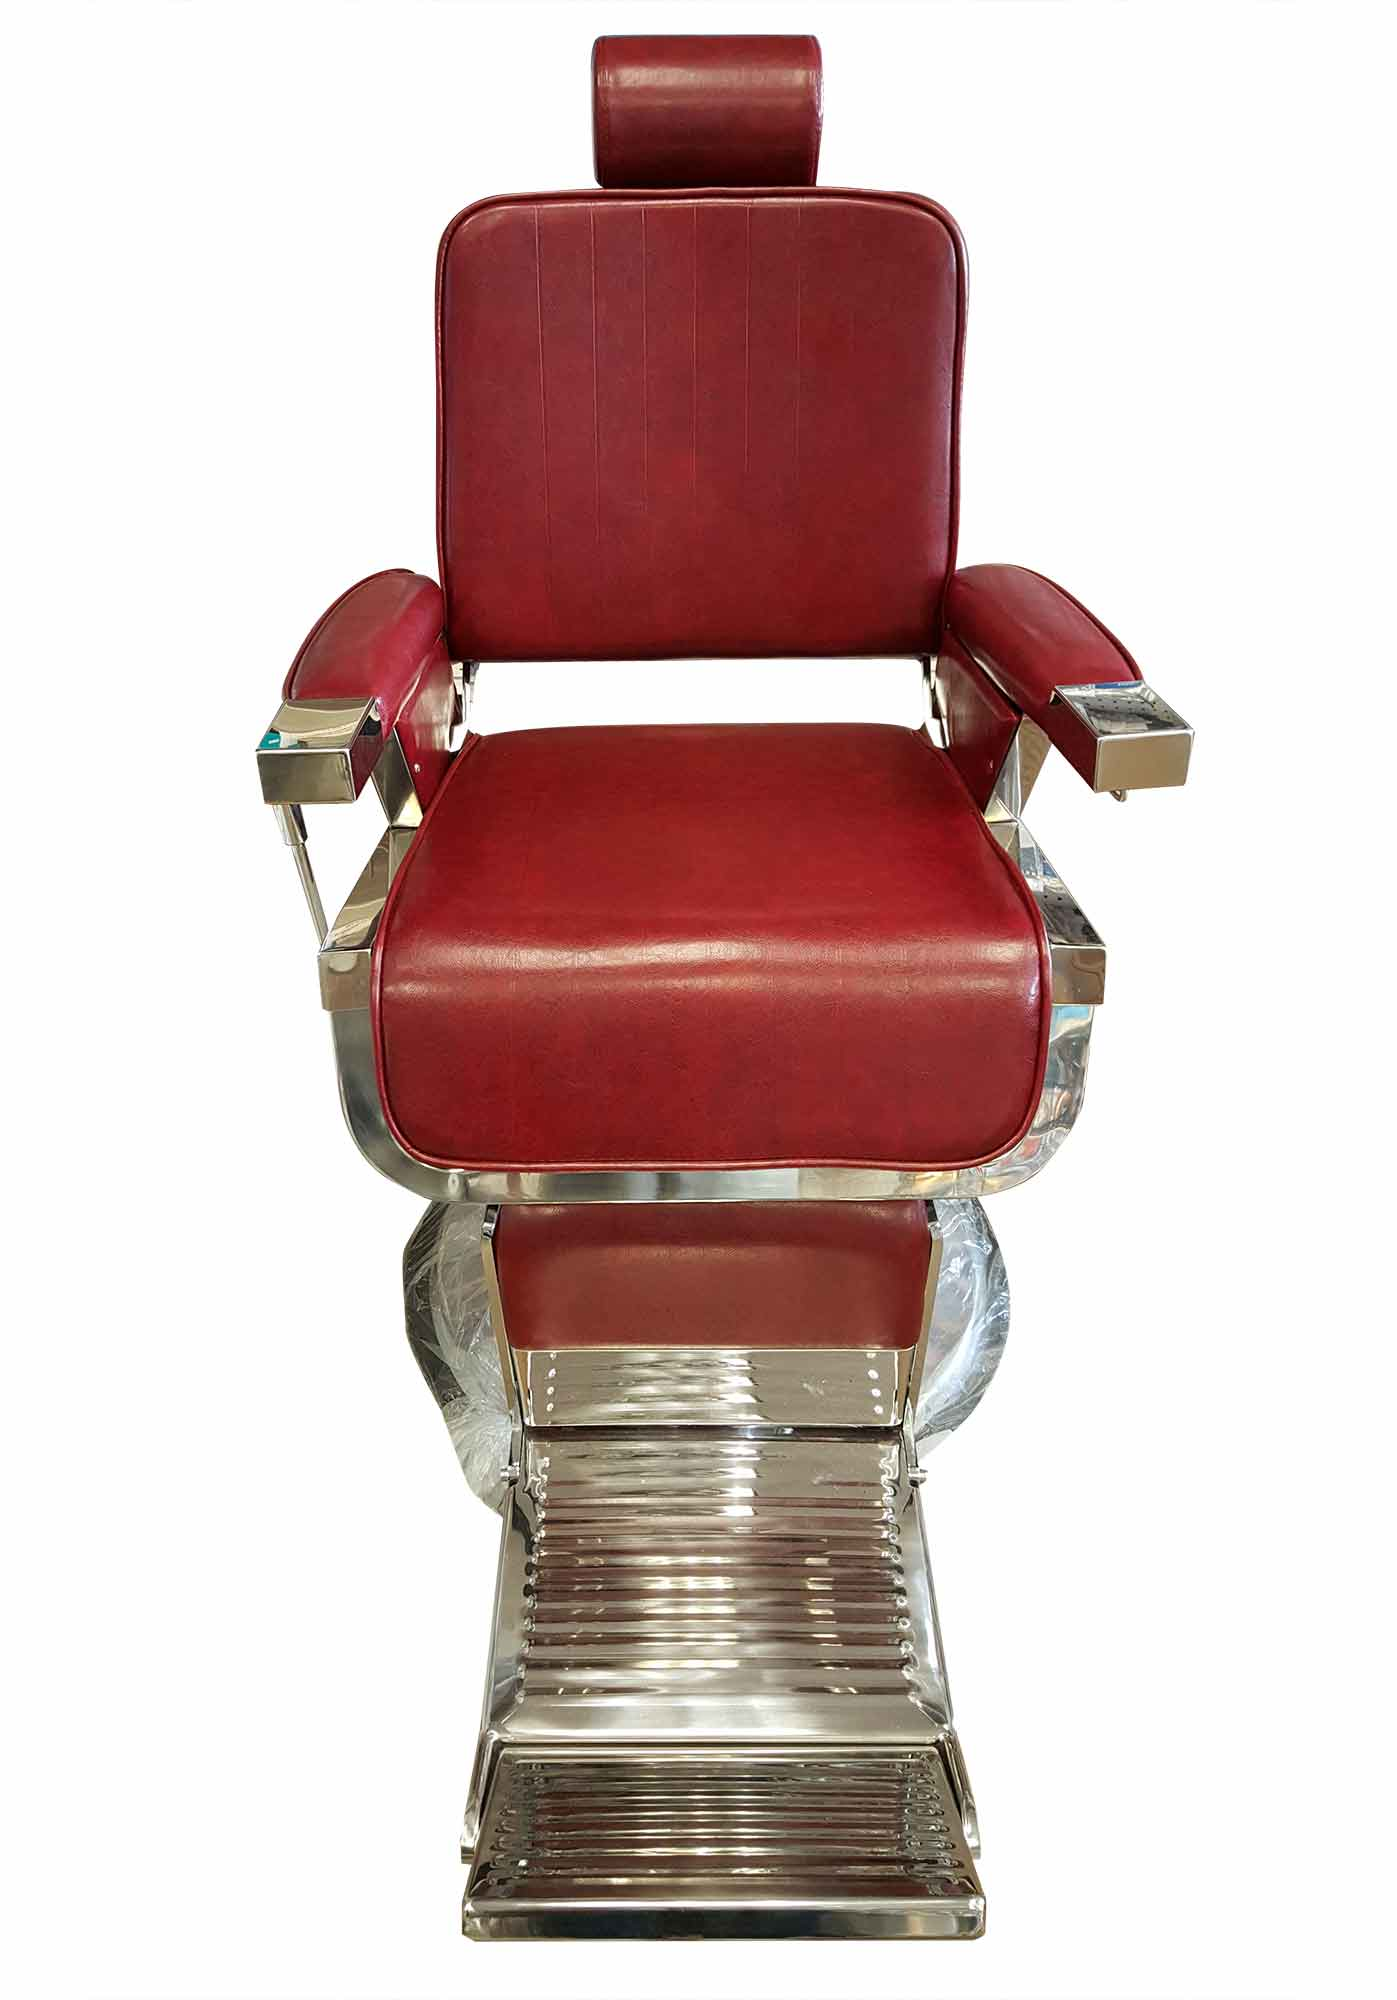 Barber Shop Chairs Hydraulic Barber Chair Xz 31819 Barber Depot